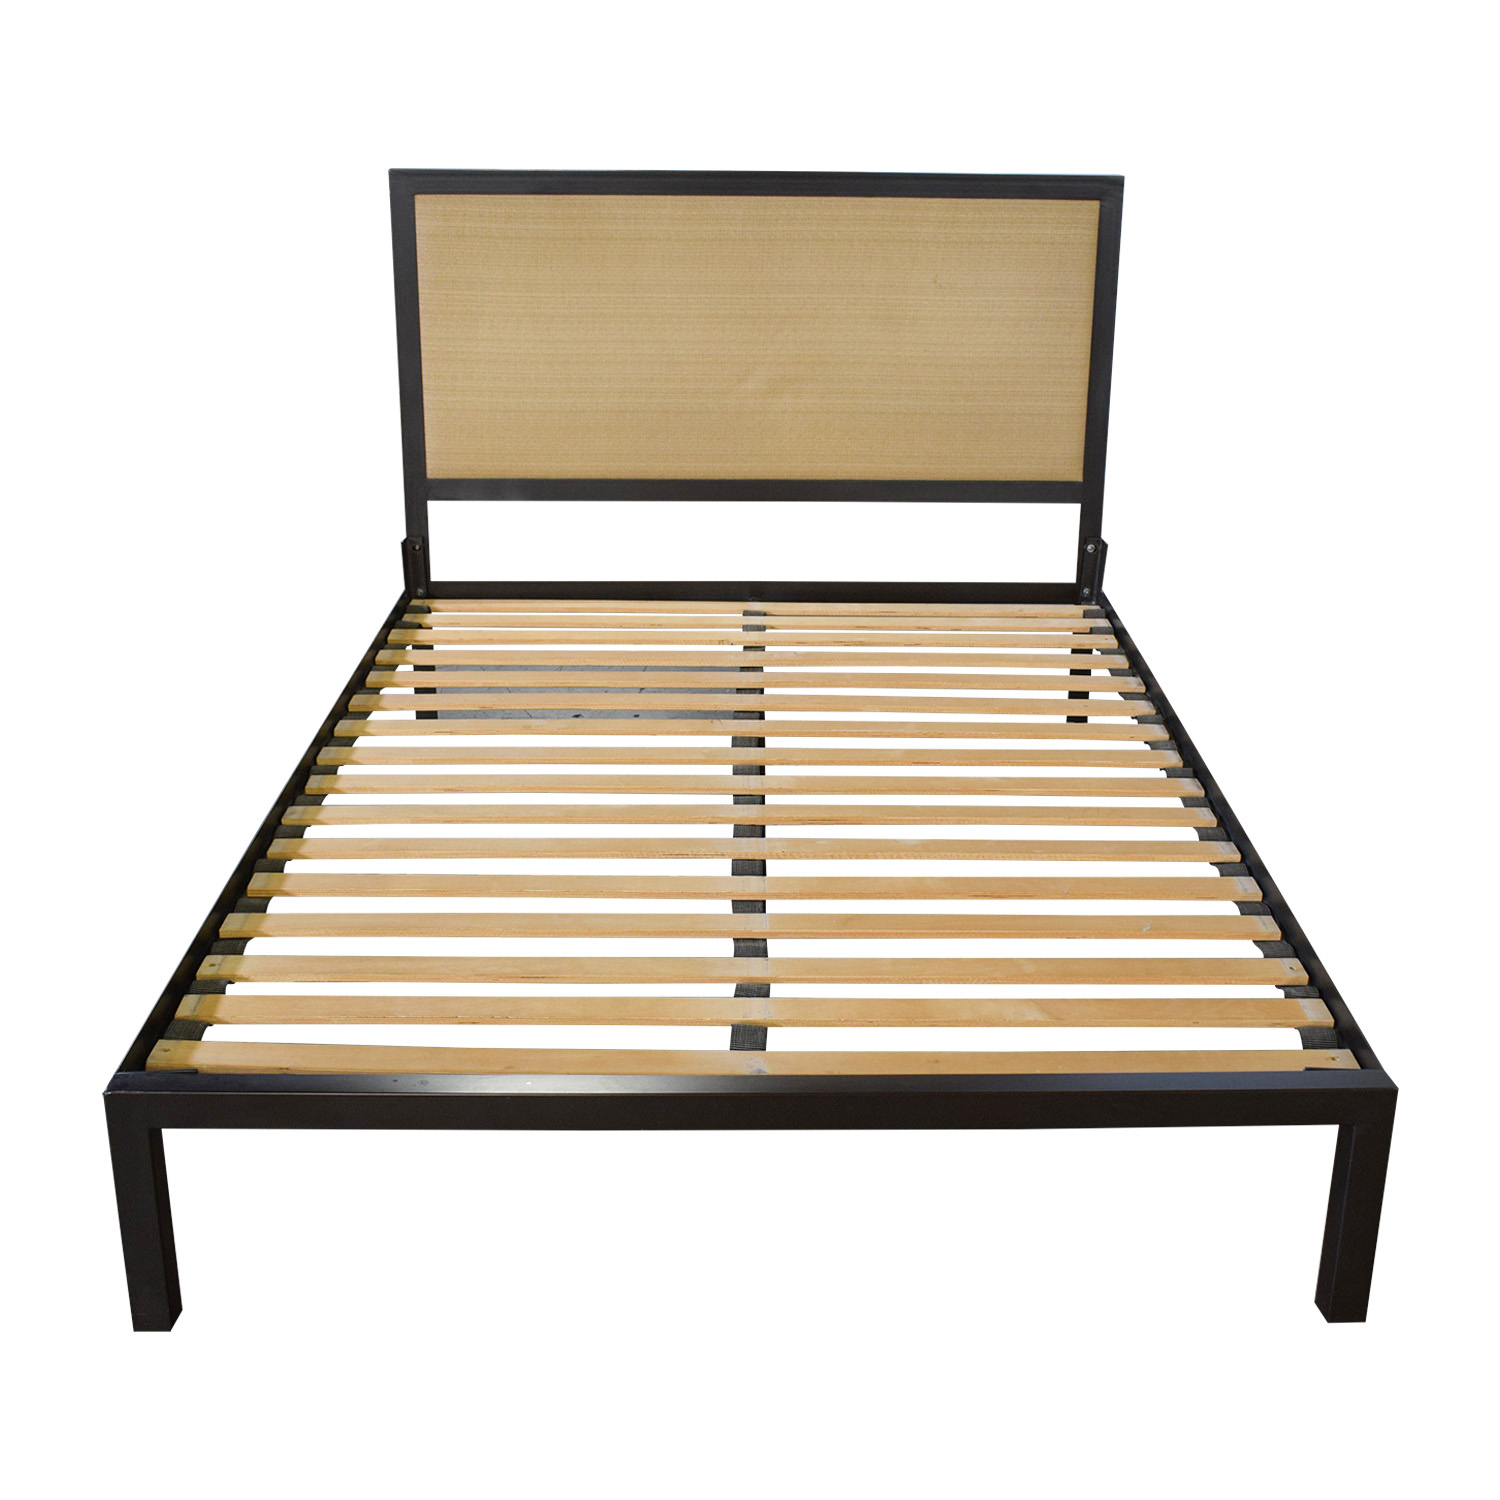 buy Crate & Barrel Steel Queen Bed Frame Crate & Barrel Beds